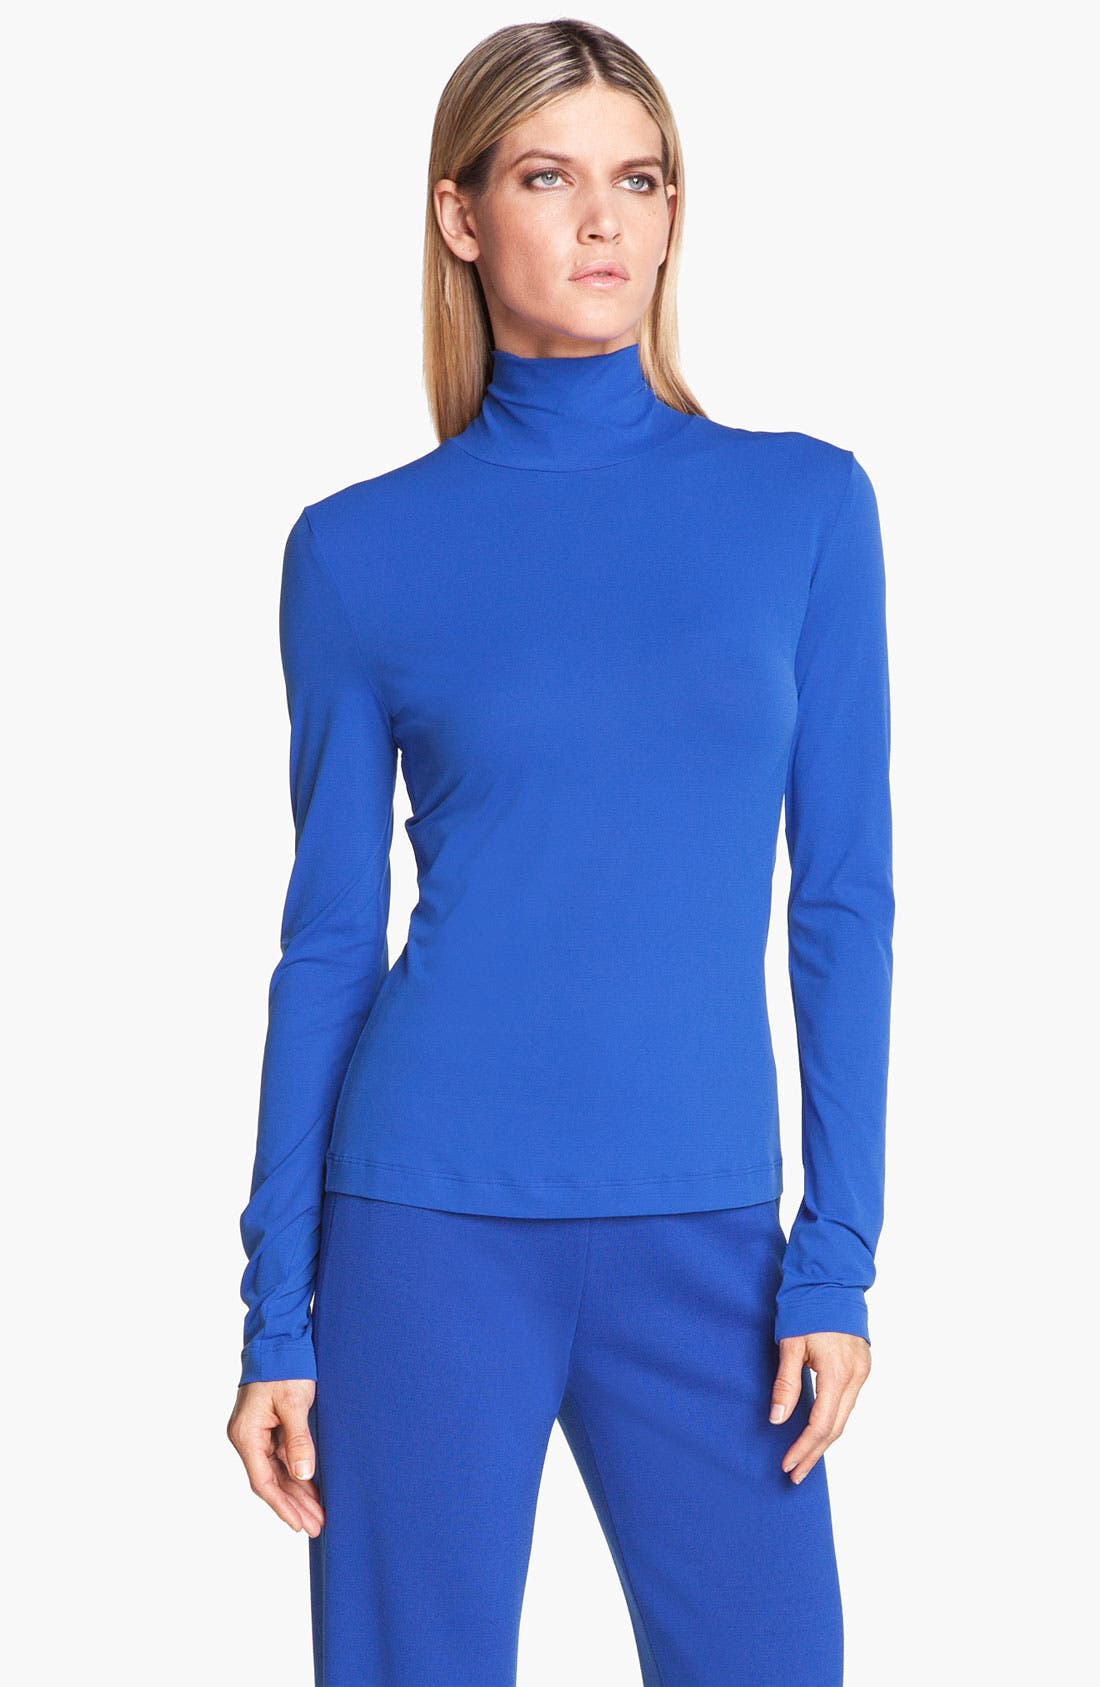 Main Image - St. John Collection Fine Jersey Turtleneck